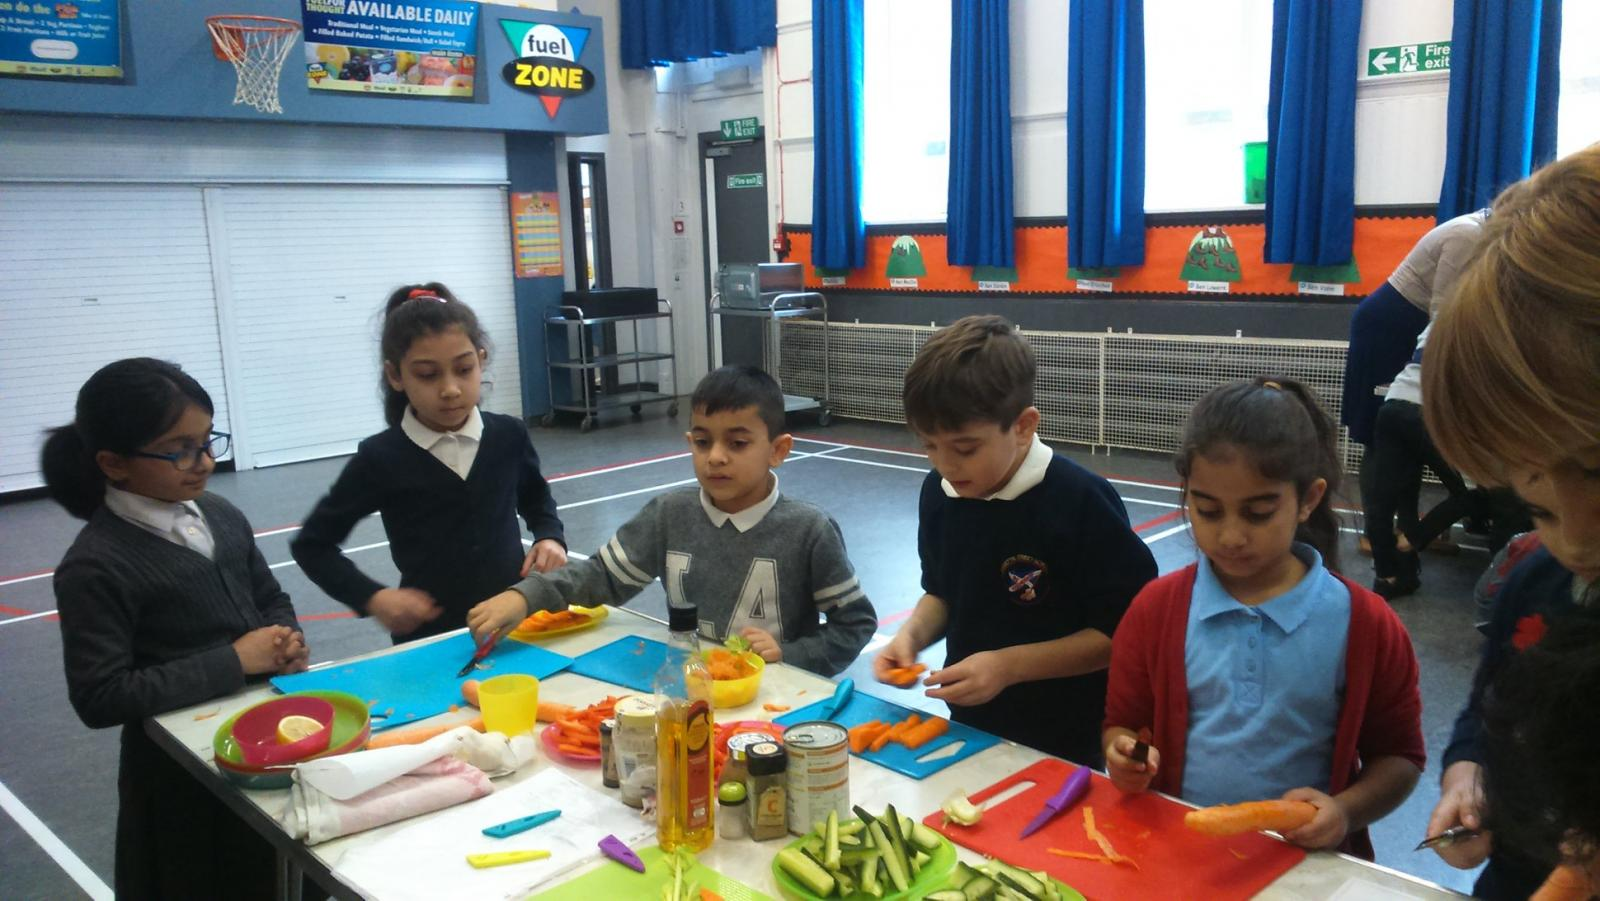 The 'Veg Cities Roadshow' visited ten schools in Glasgow. Credit: Glasgow Community Food Network